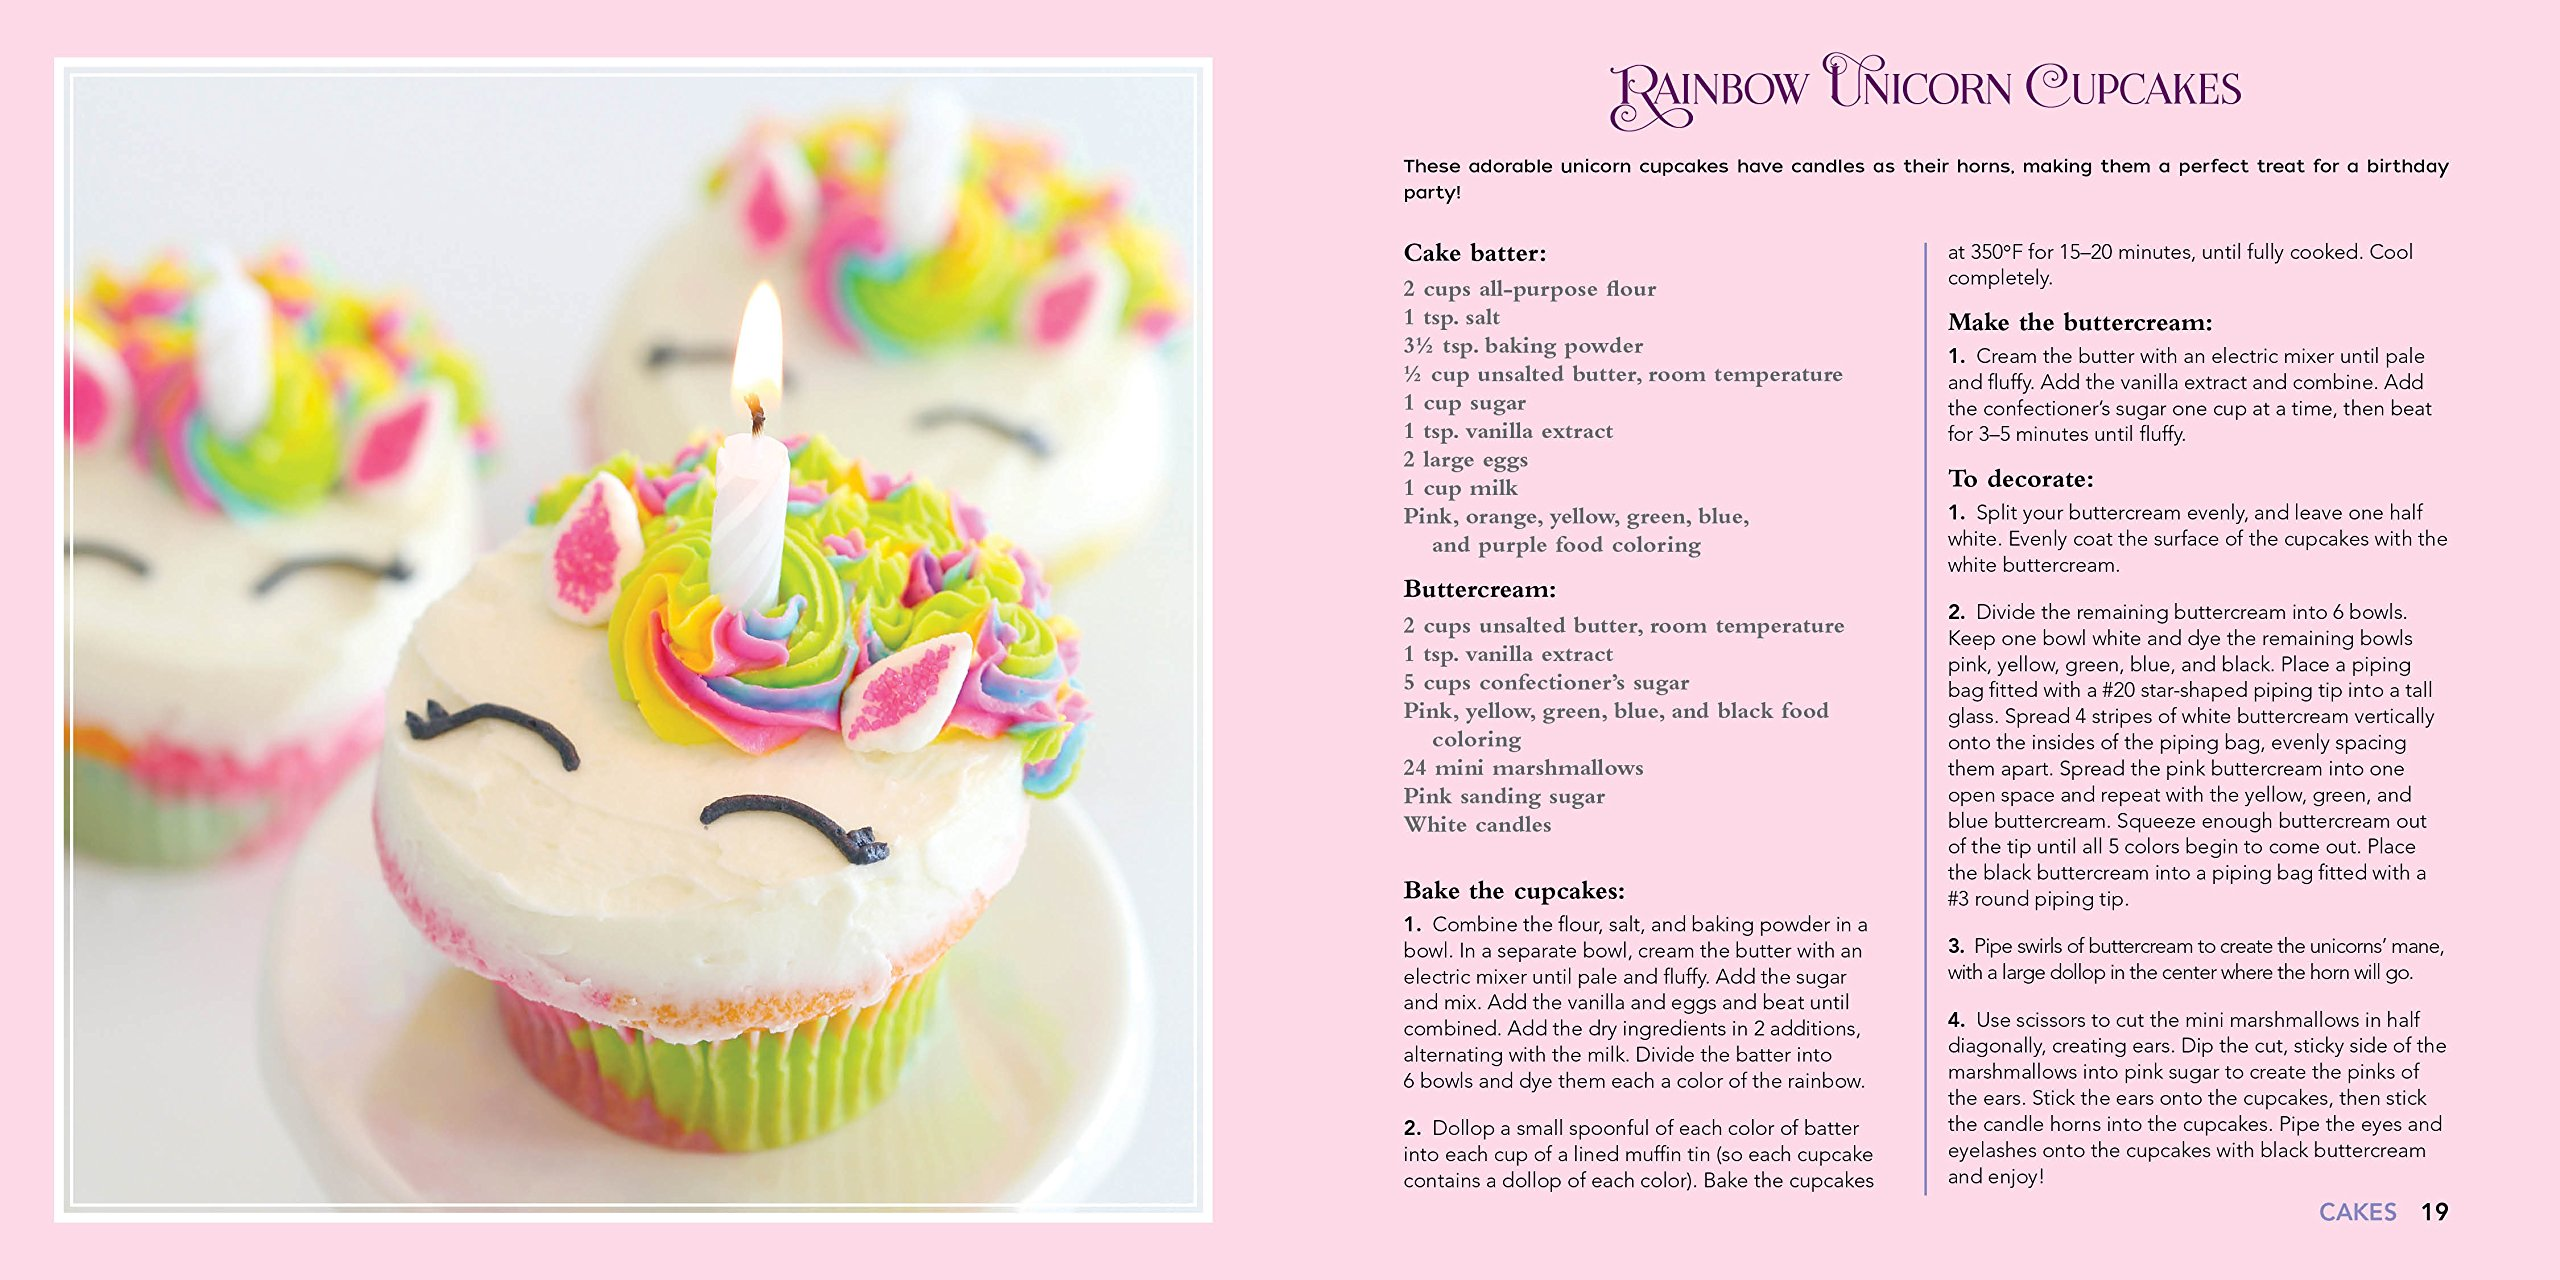 Unicorn Food: Rainbow Treats and Colorful Creations to Enjoy and Admire (Whimsical Treats) 8